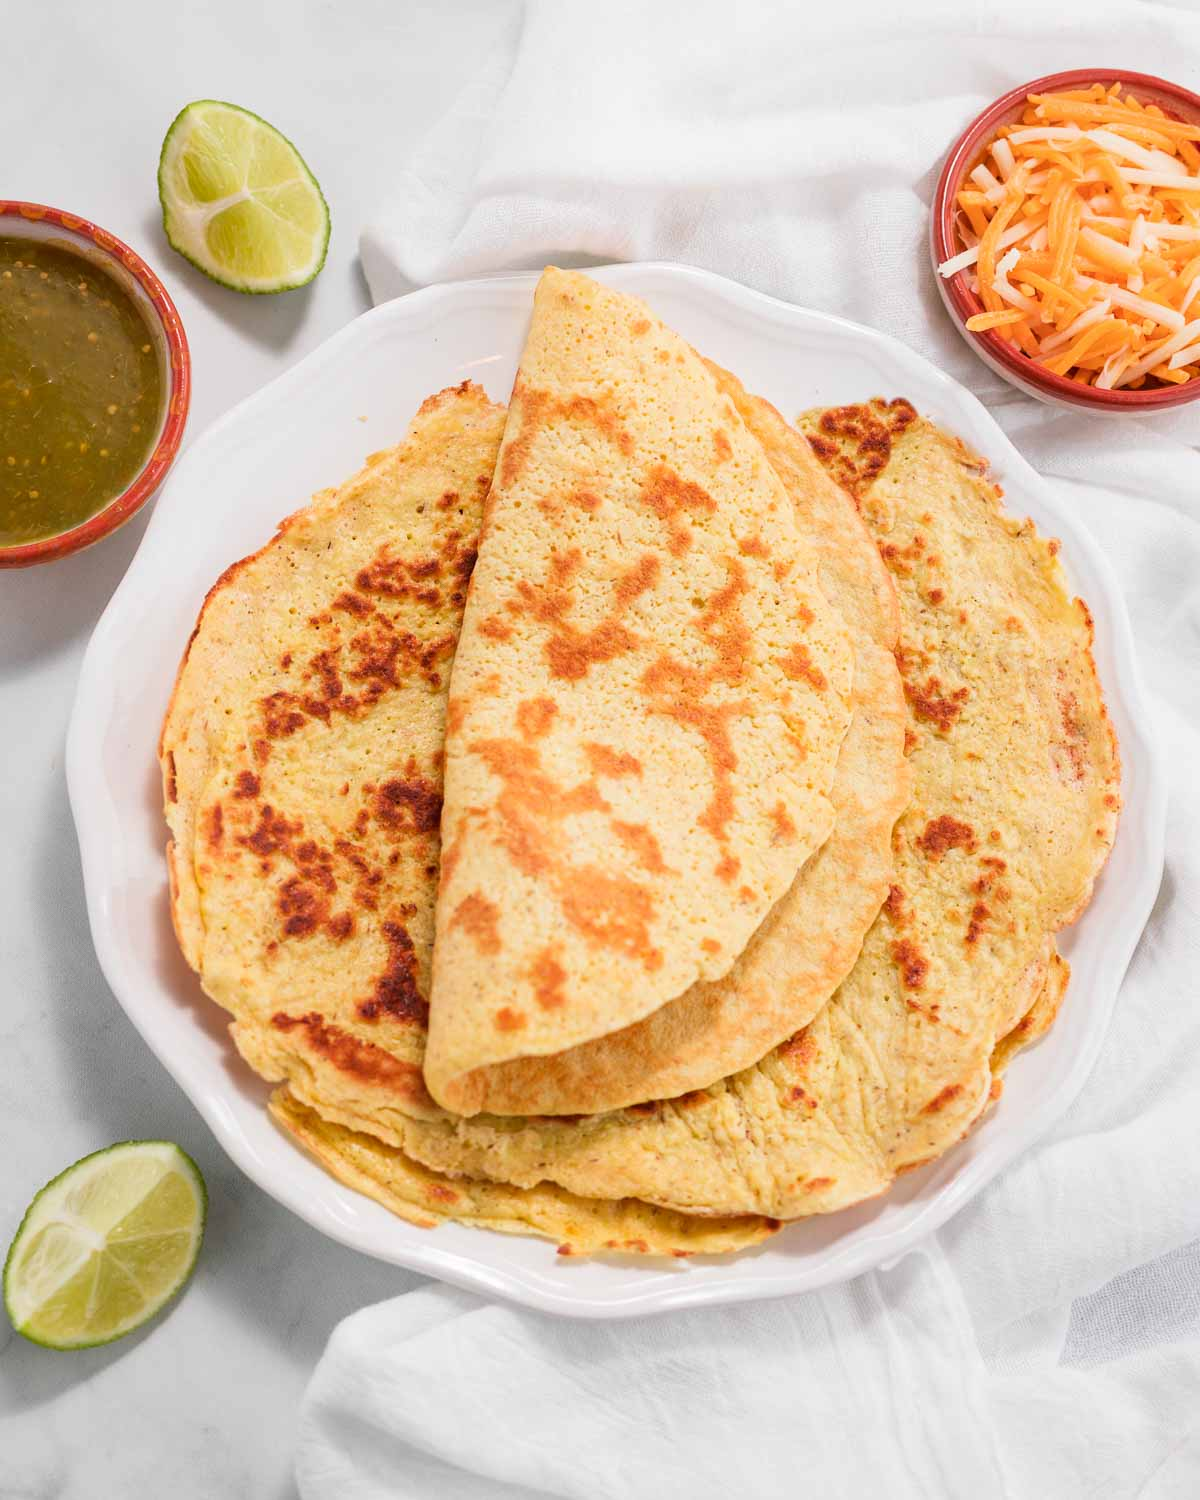 A stack of keto tortillas or wraps with one folded on top .